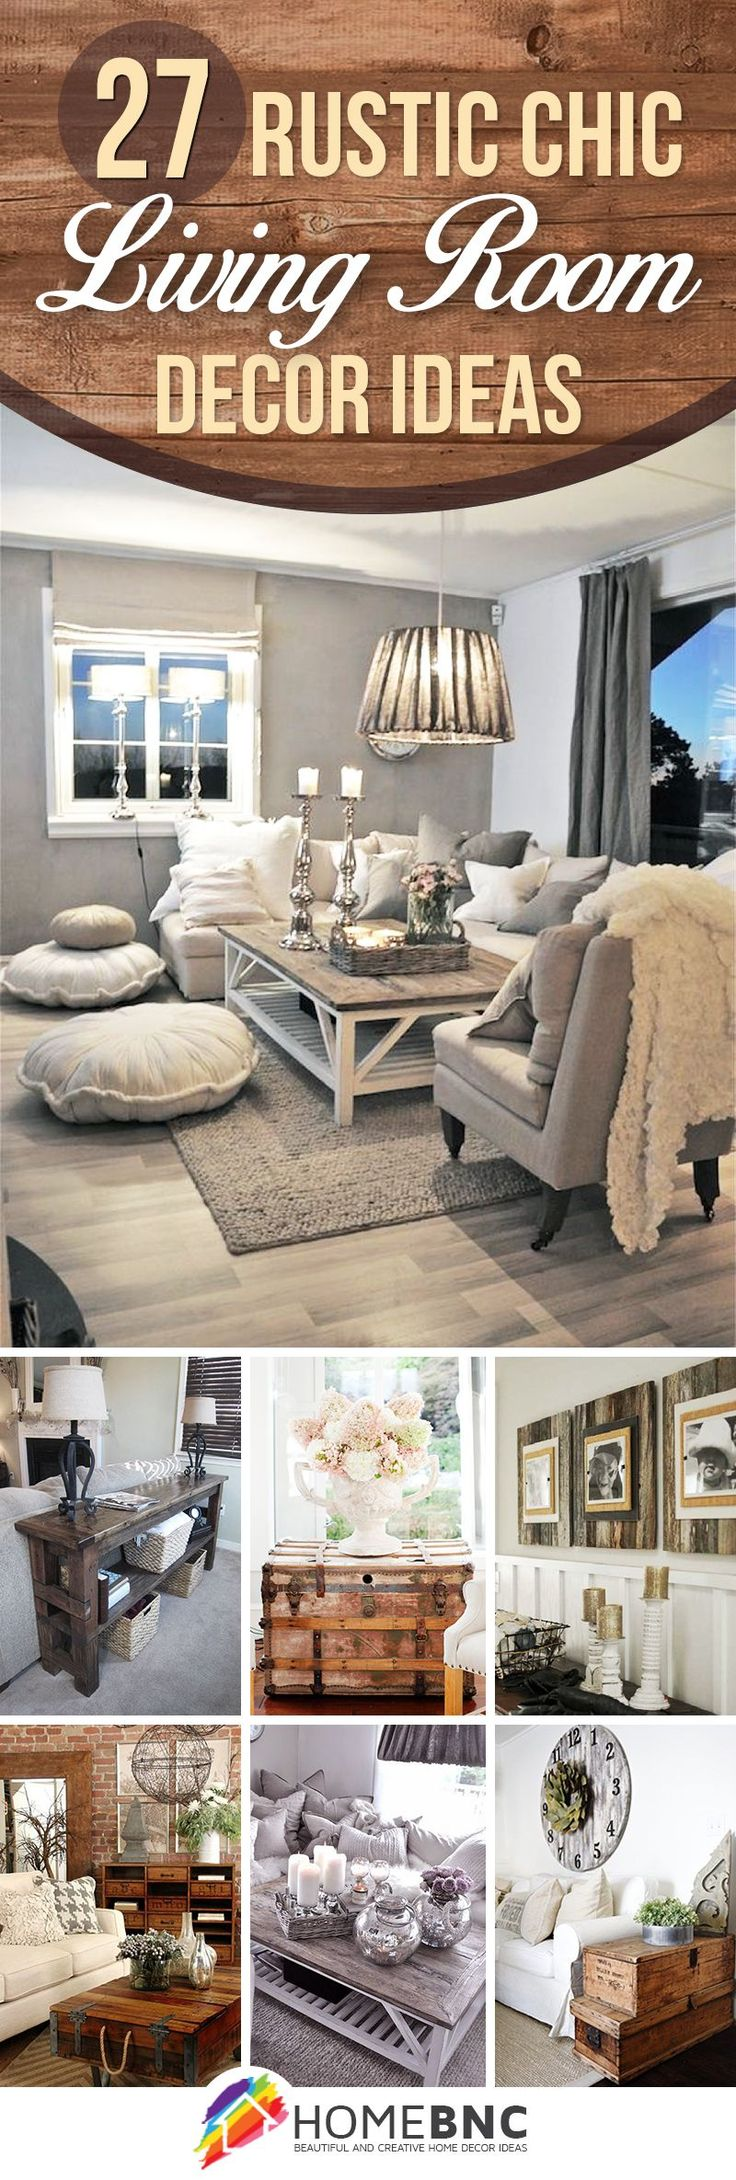 best My Shabby chic decor images on Pinterest House